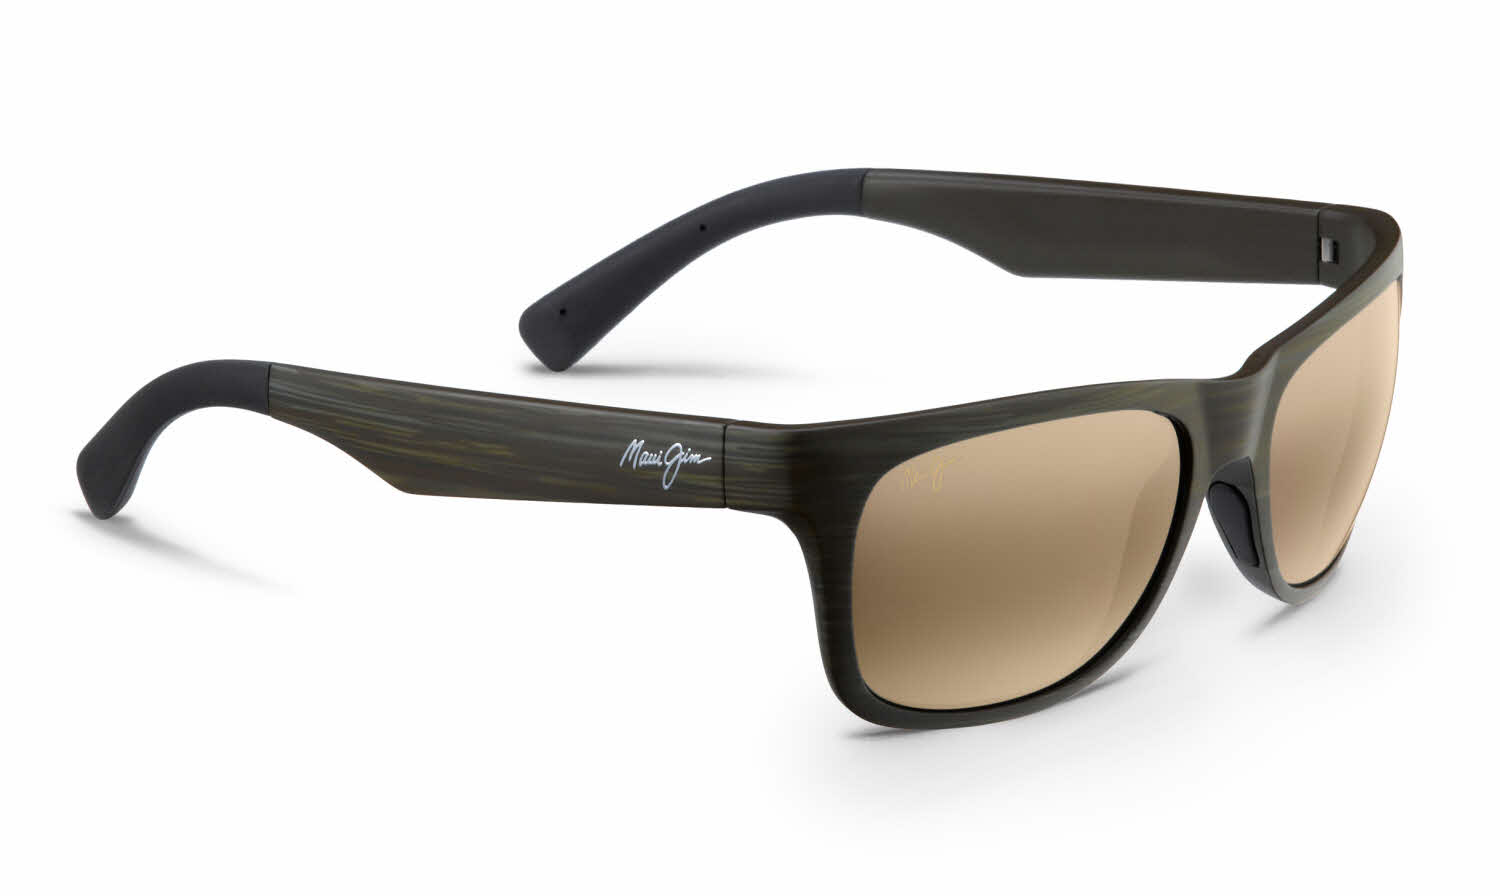 Maui Jim Kahi-736 Prescription Sunglasses